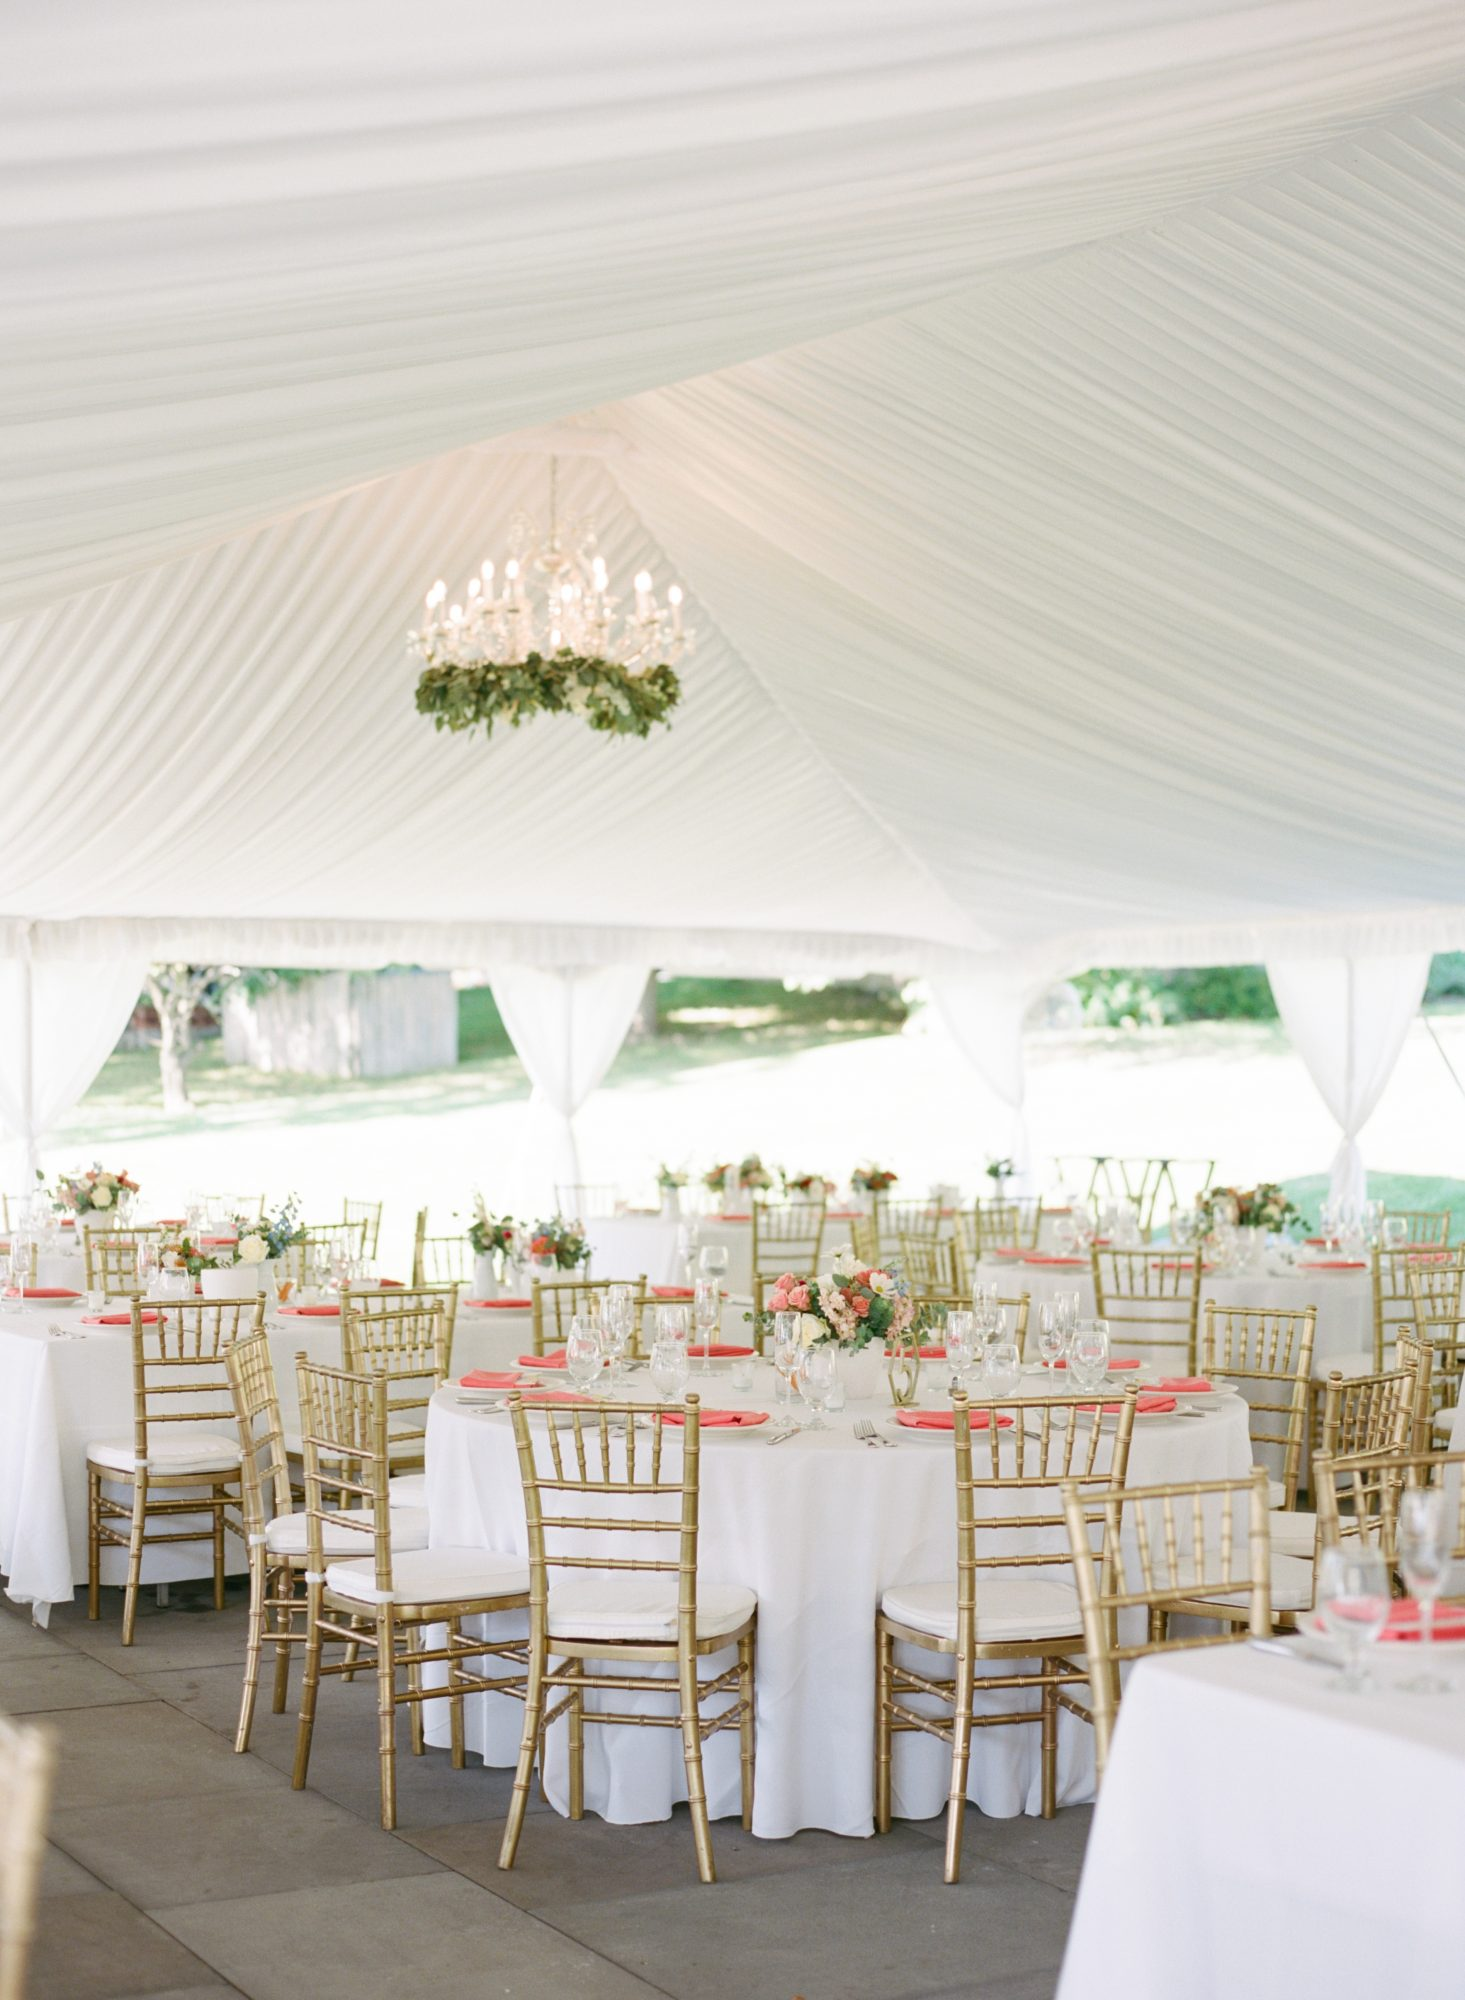 charlene jeremy wedding reception decor